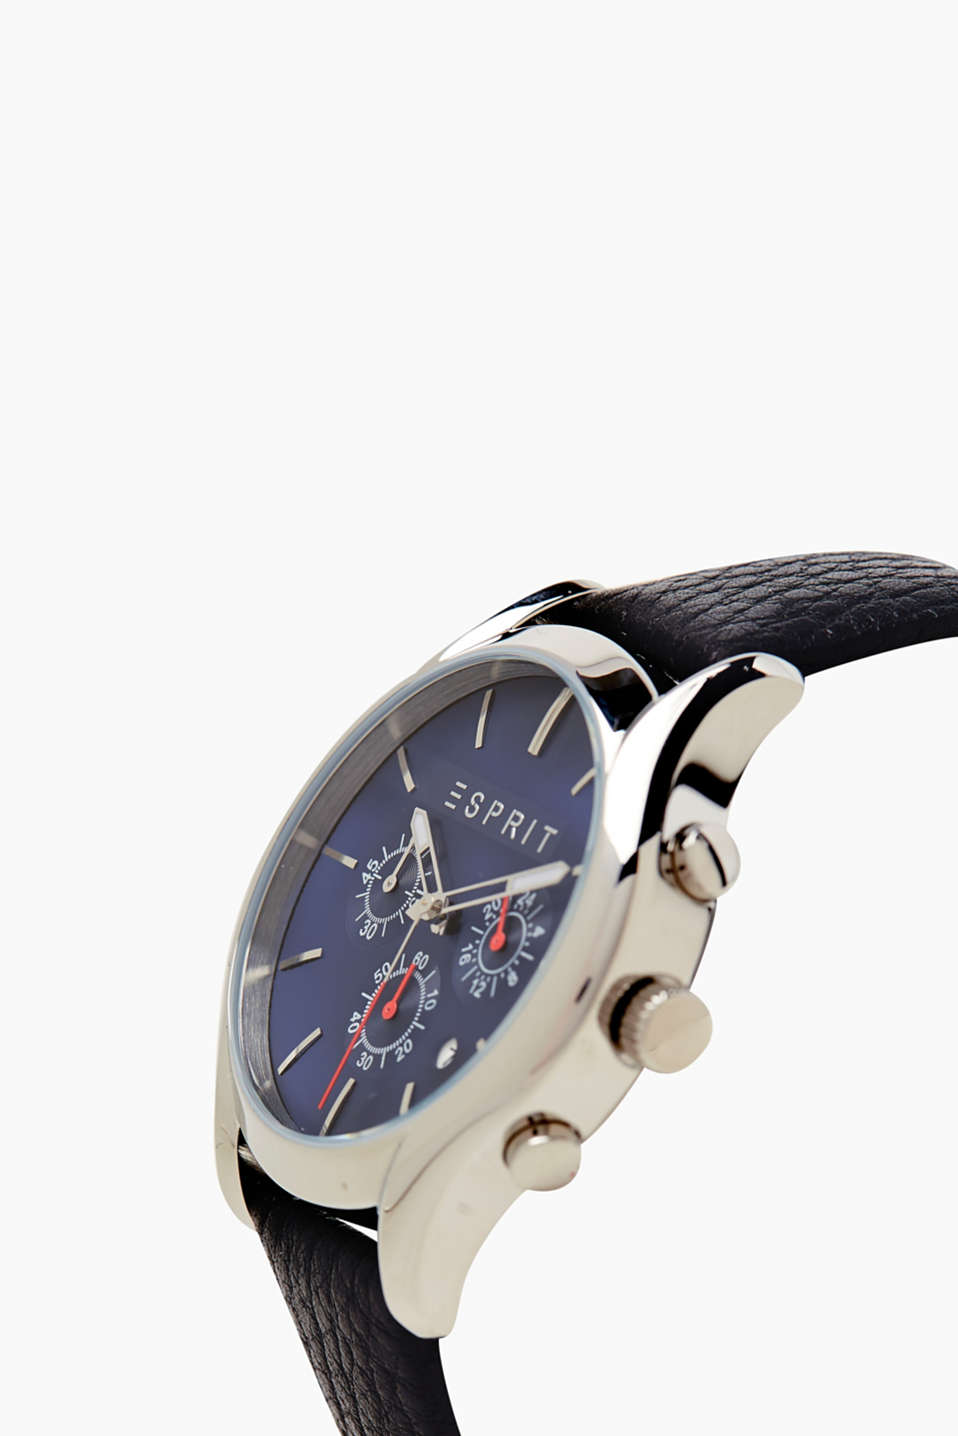 Mens chrono with a leather strap